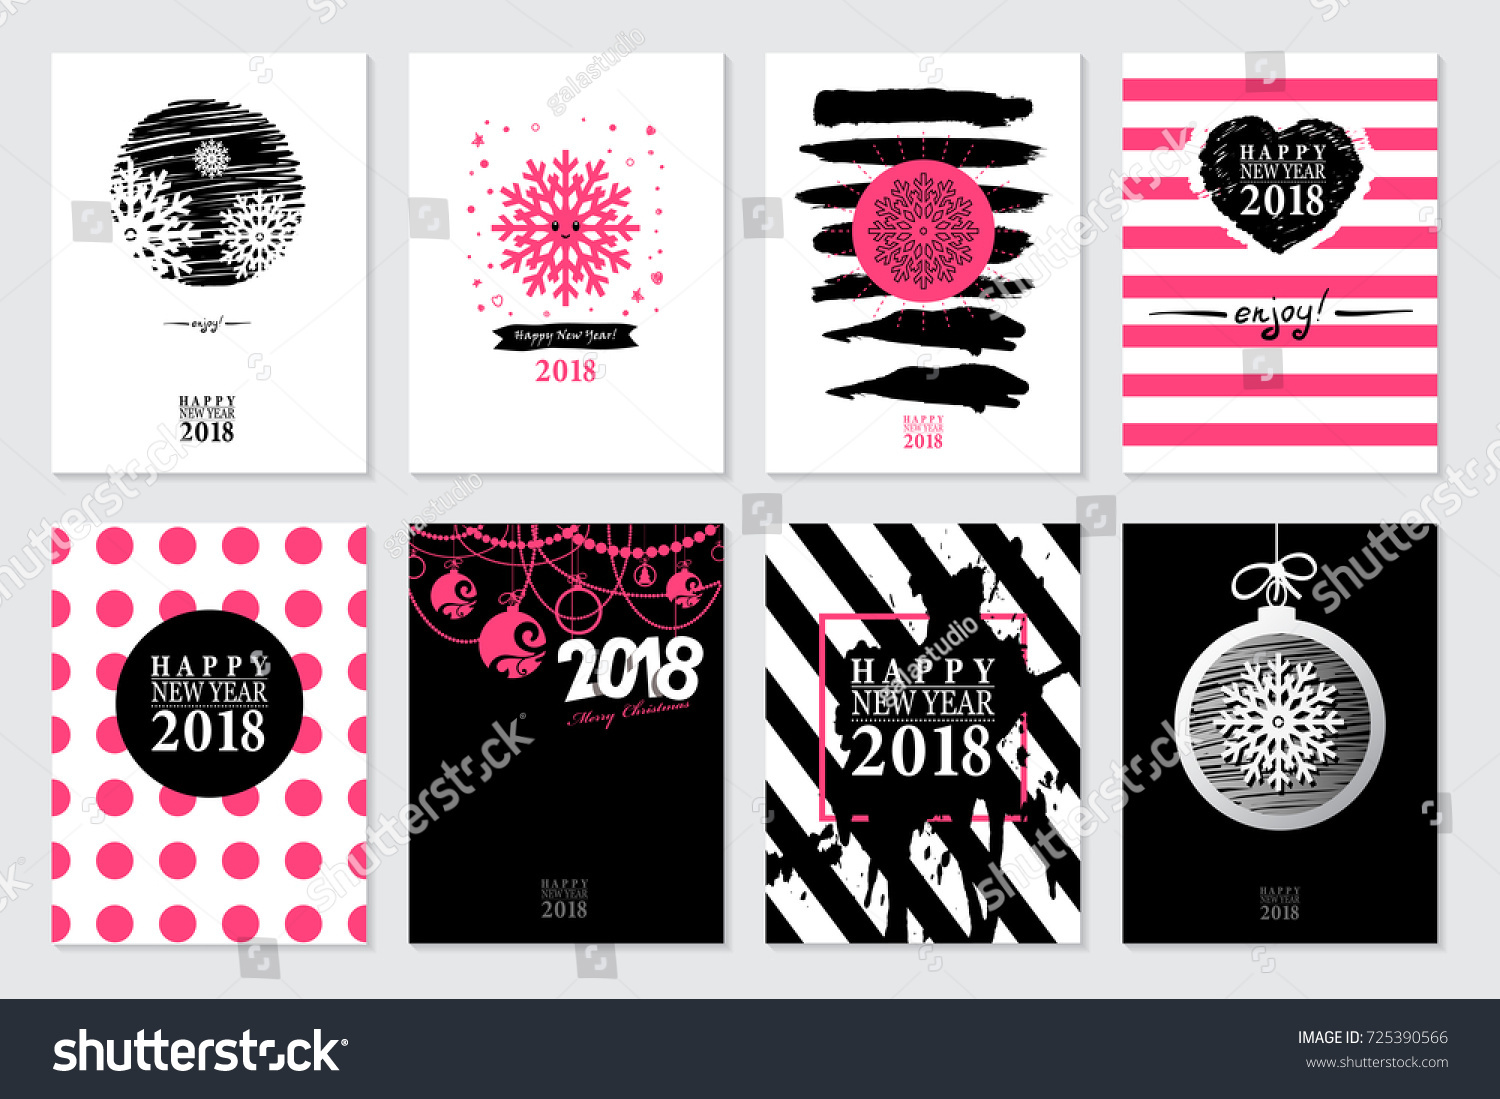 Set of 2018 Happy New Year Sale Banners Templates for on-line ...